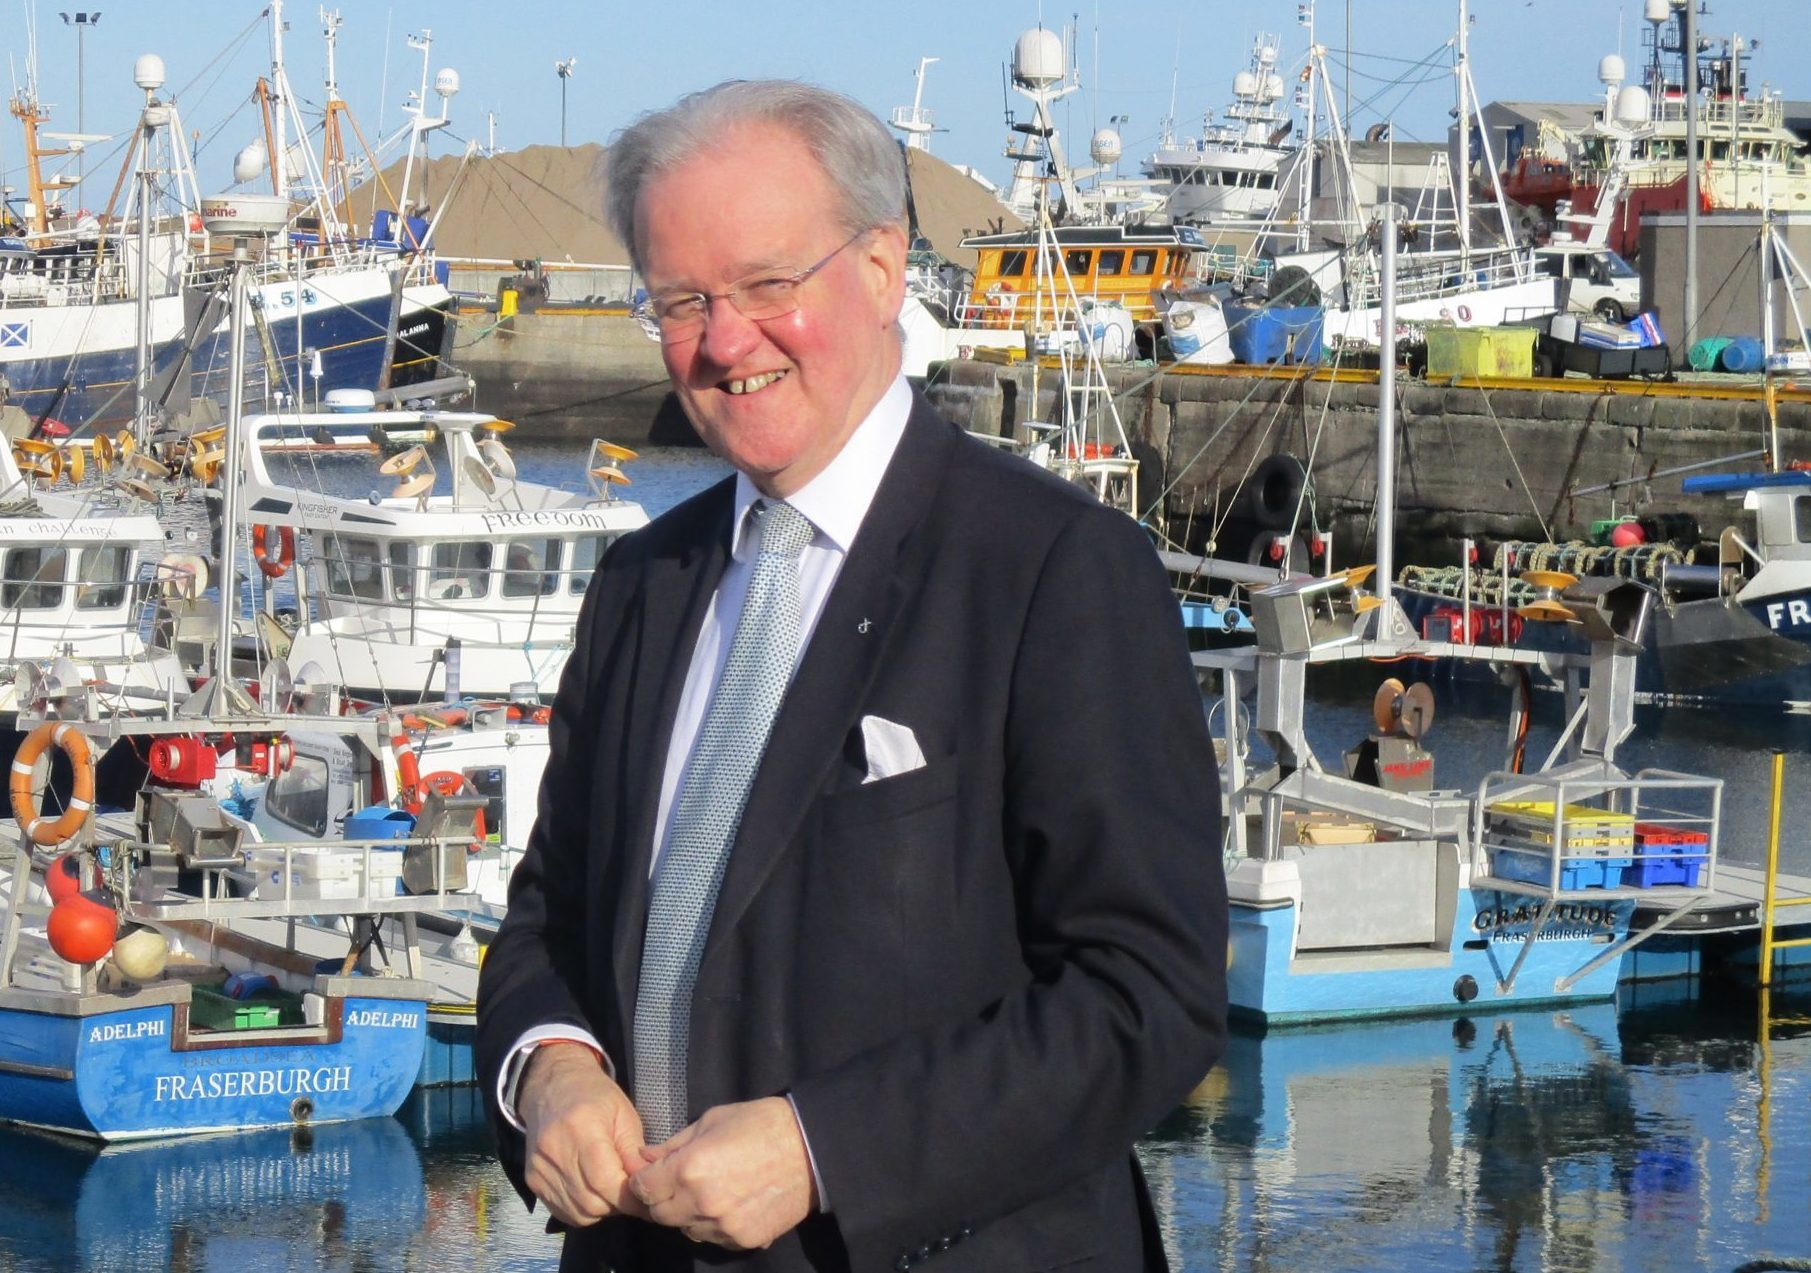 Stewart Stevenson, MSP for Banffshire and Buchan Coast has welcomed the funding.